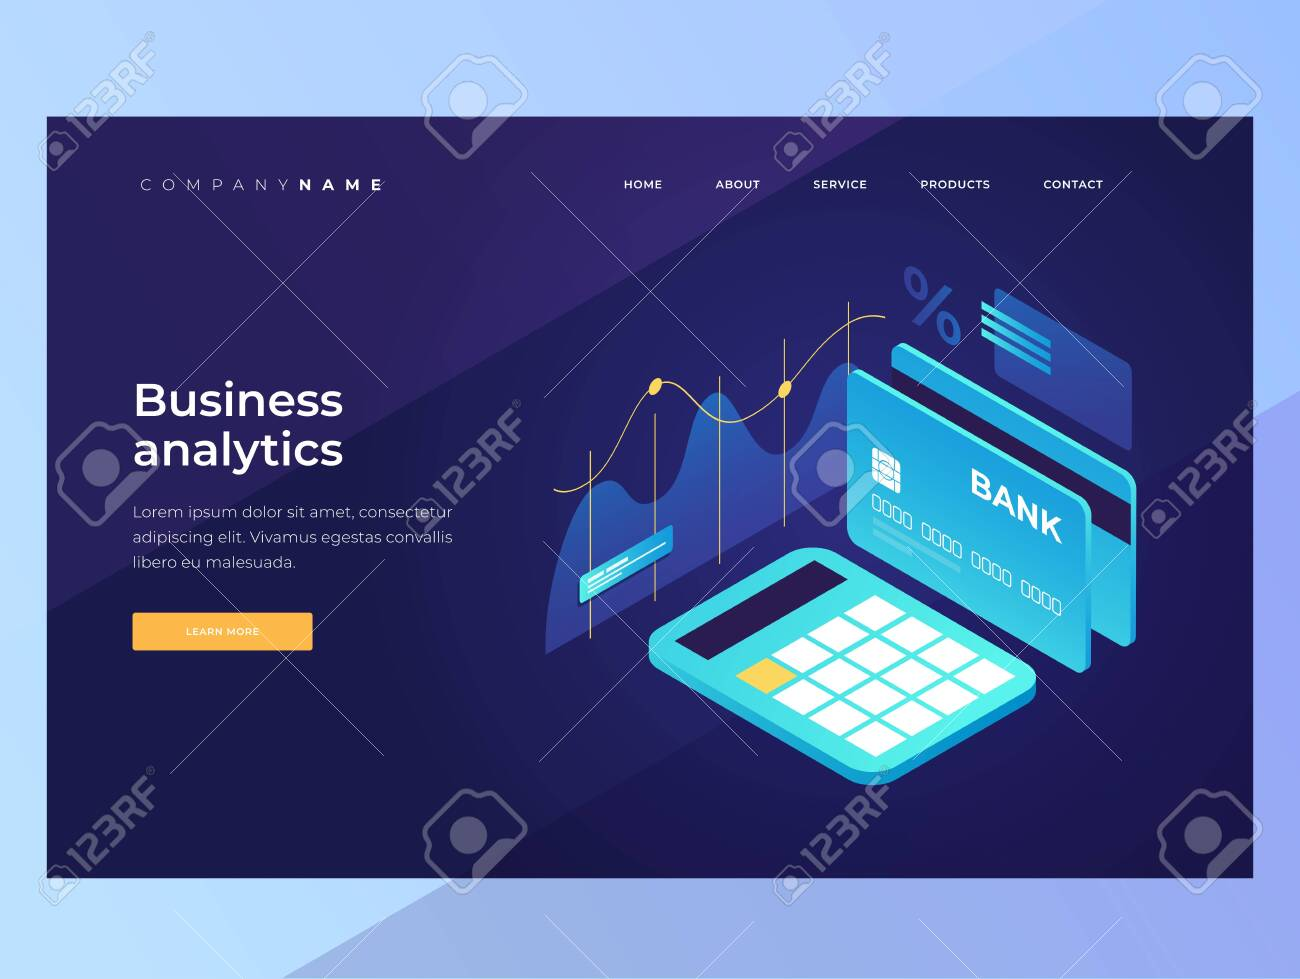 Online payments. Growth and income calculation, finance analysis. Isometric image of a calculator, bank card on a blue background. Landing Page. Vector illustration for web banners. - 151373549